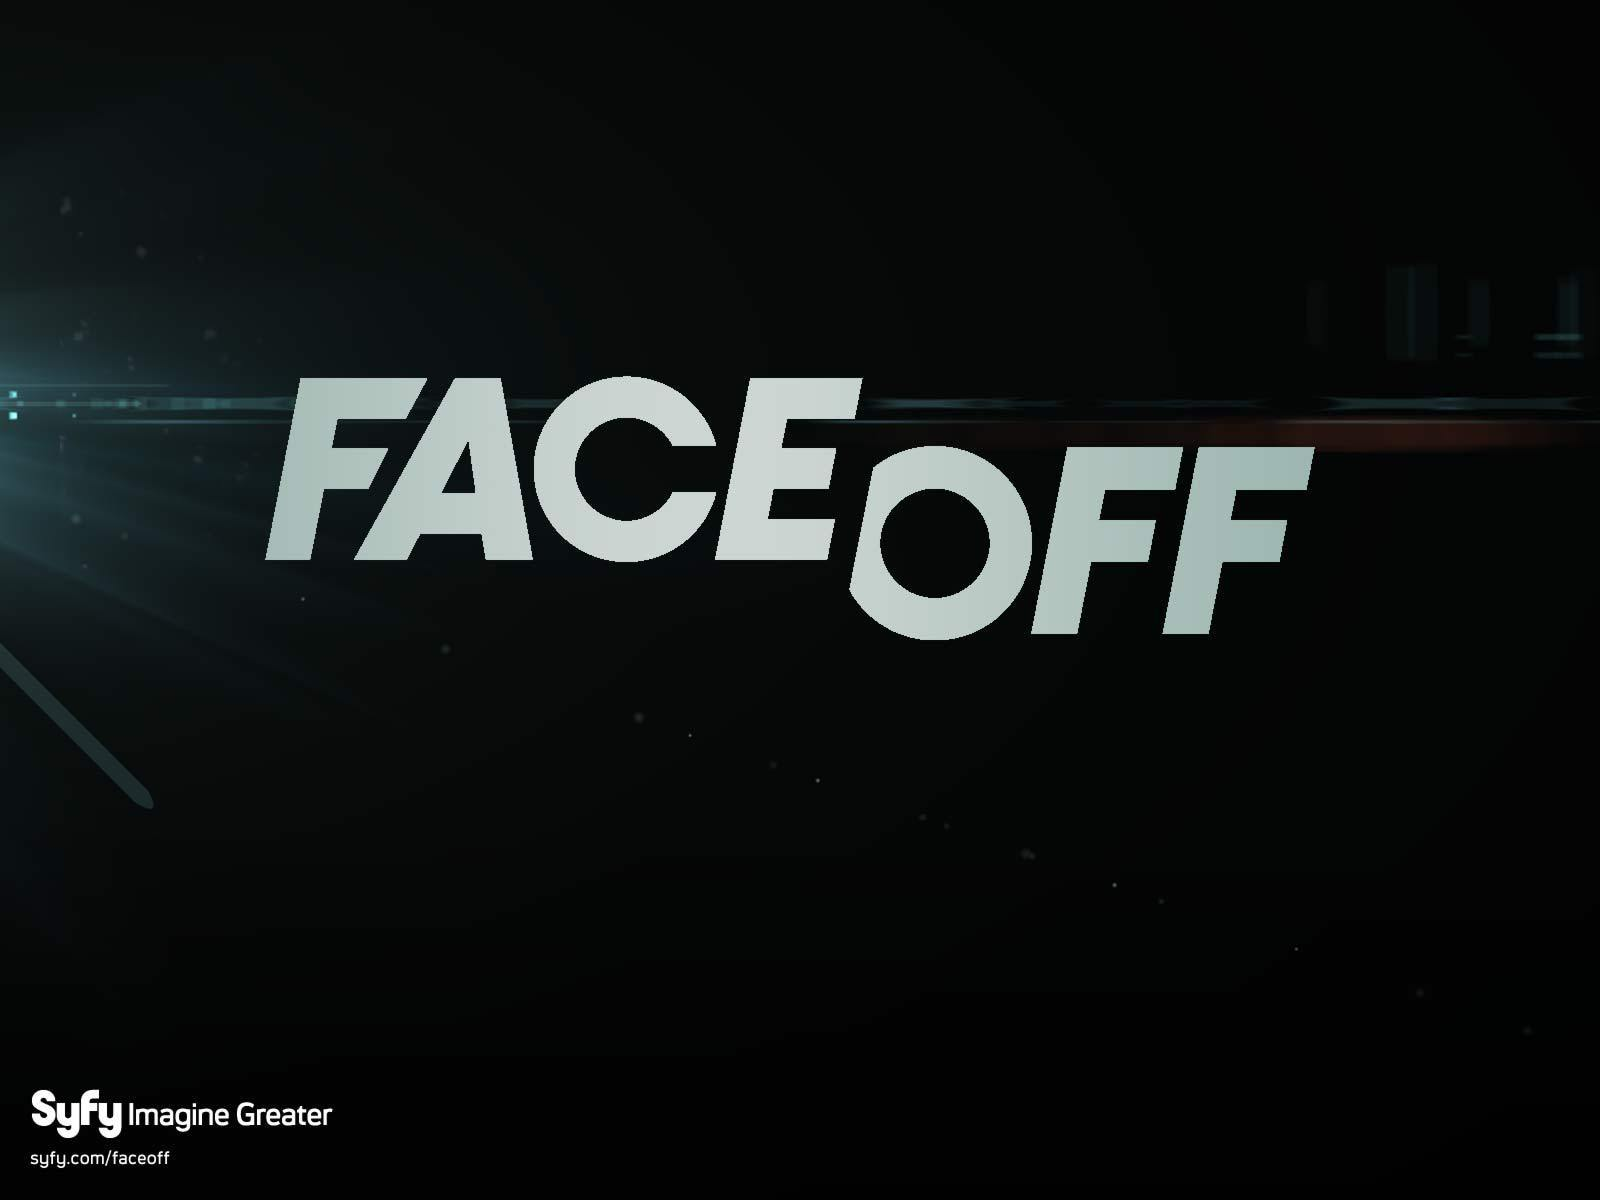 face off makeup artist competition images face off hd wallpaper and